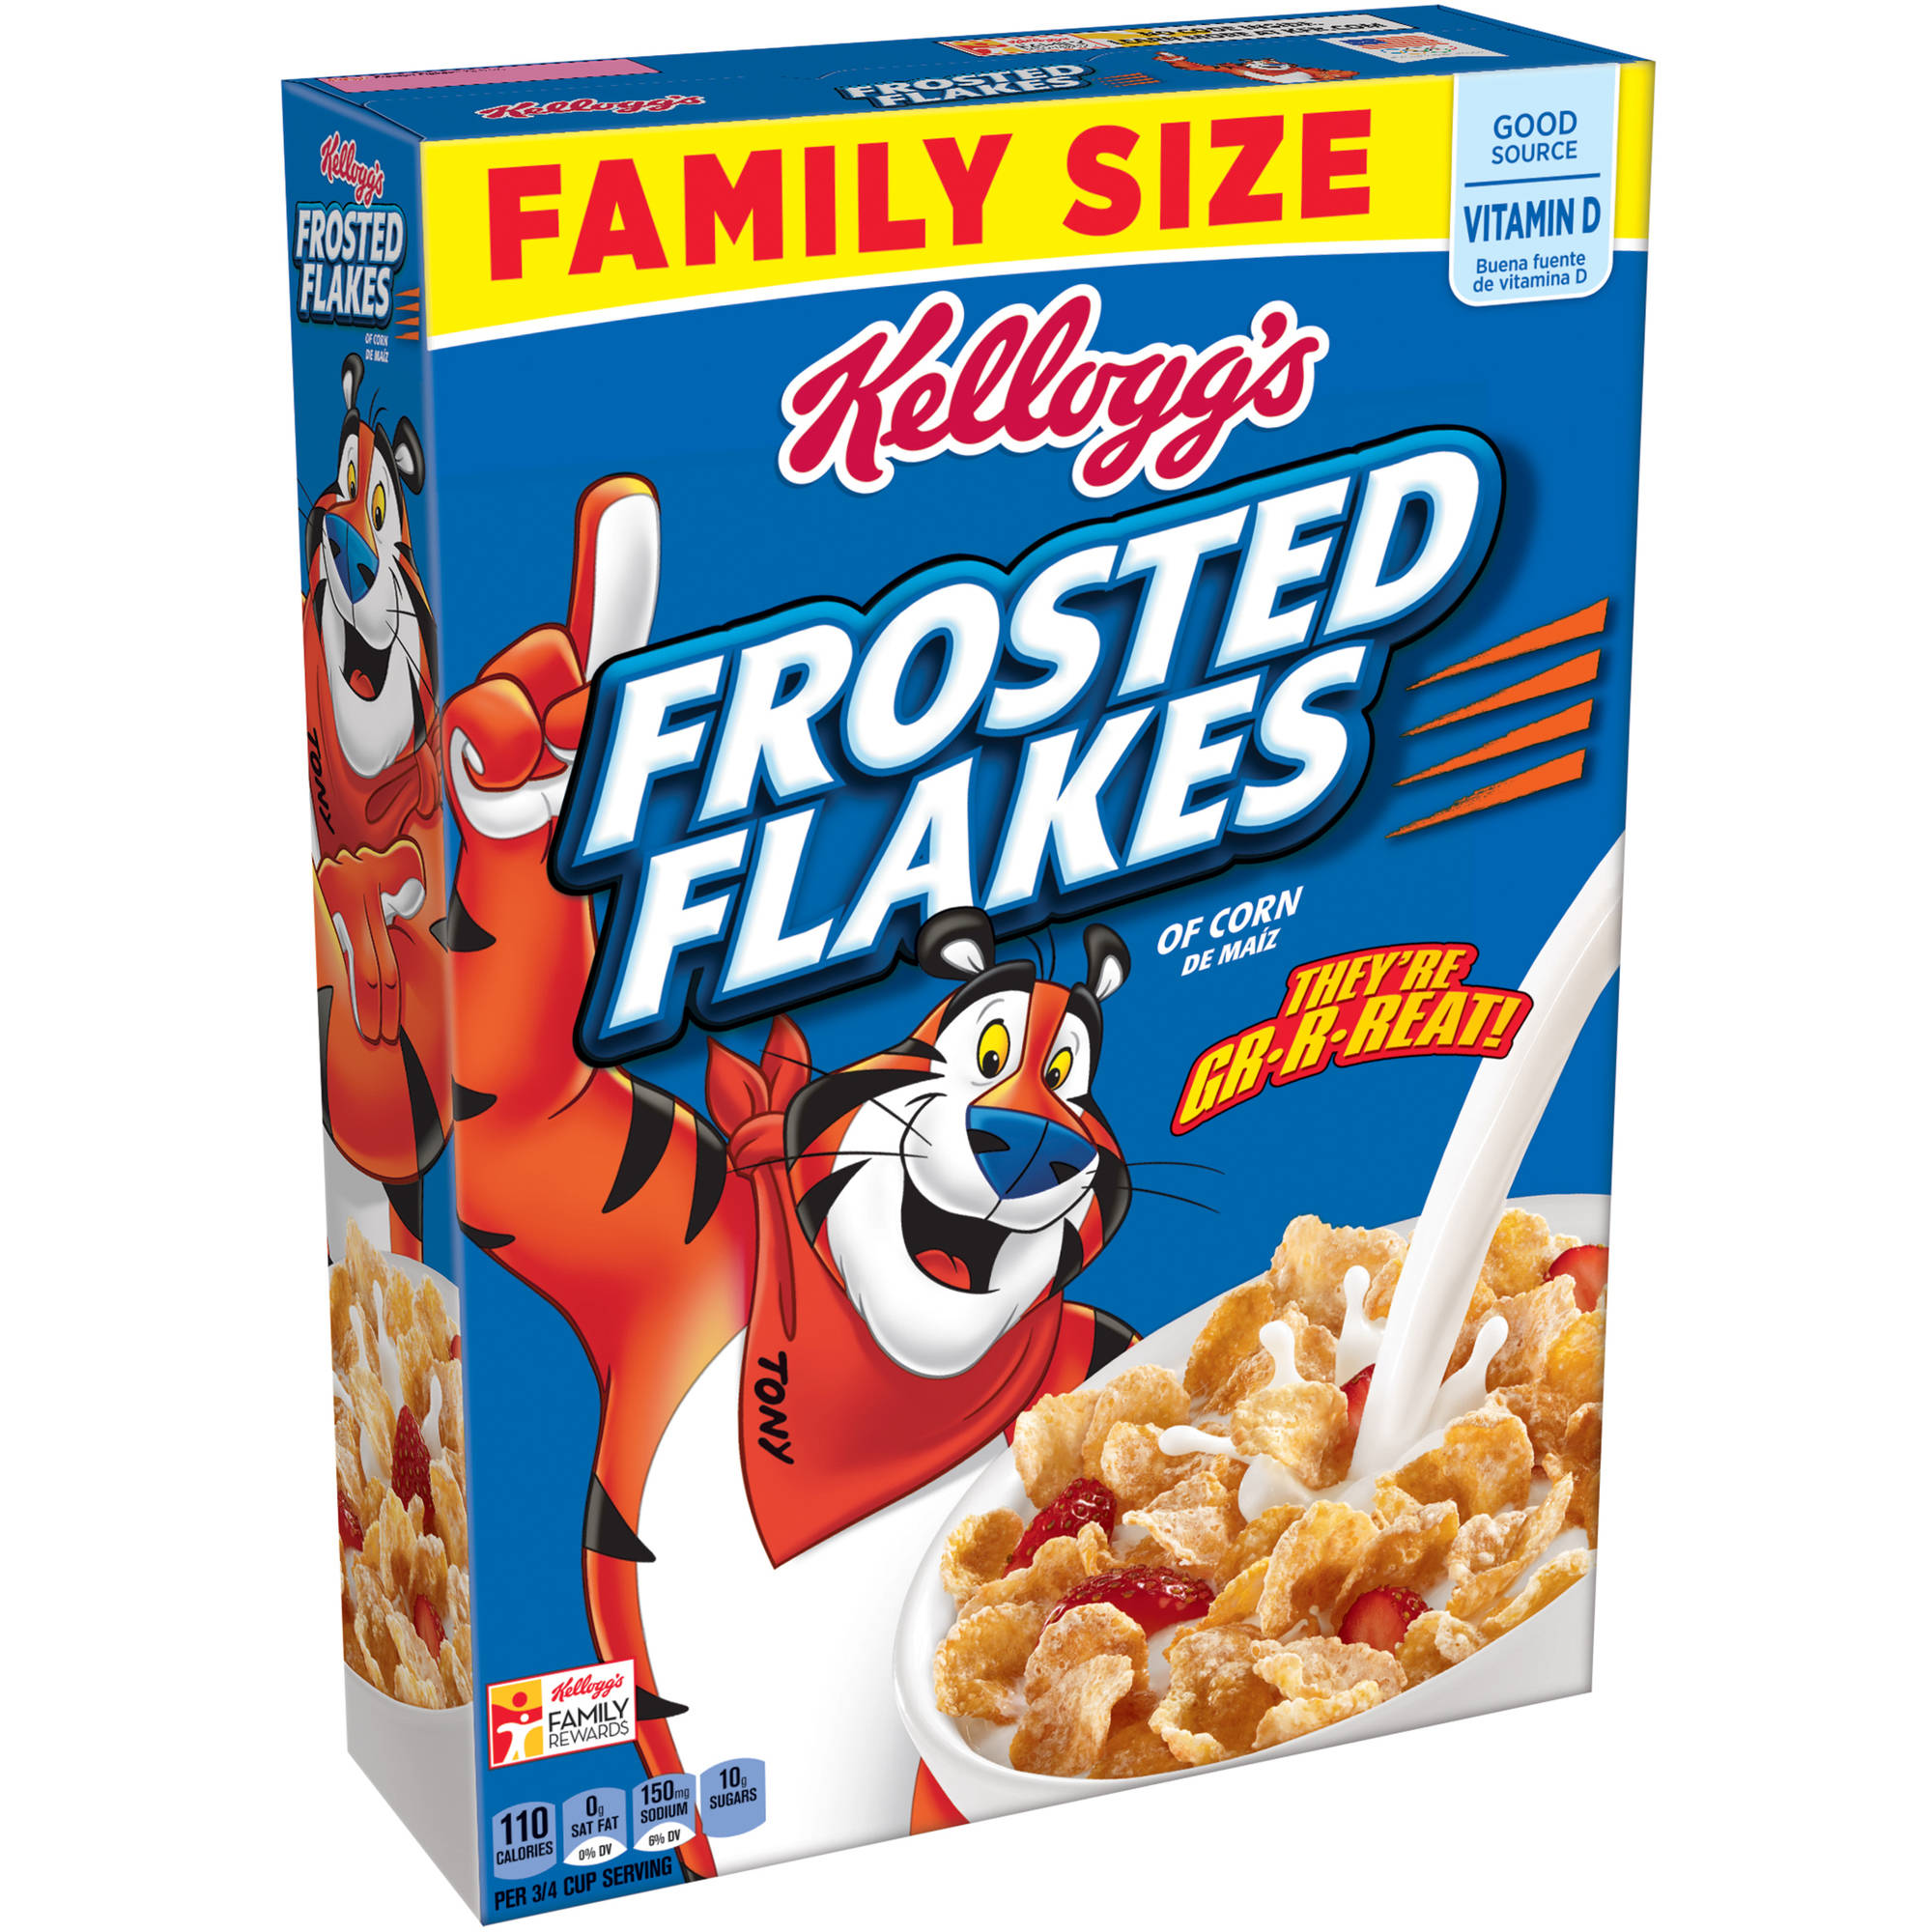 Kellogg's Frosted Flakes Cereal Family Size, 26.8 oz